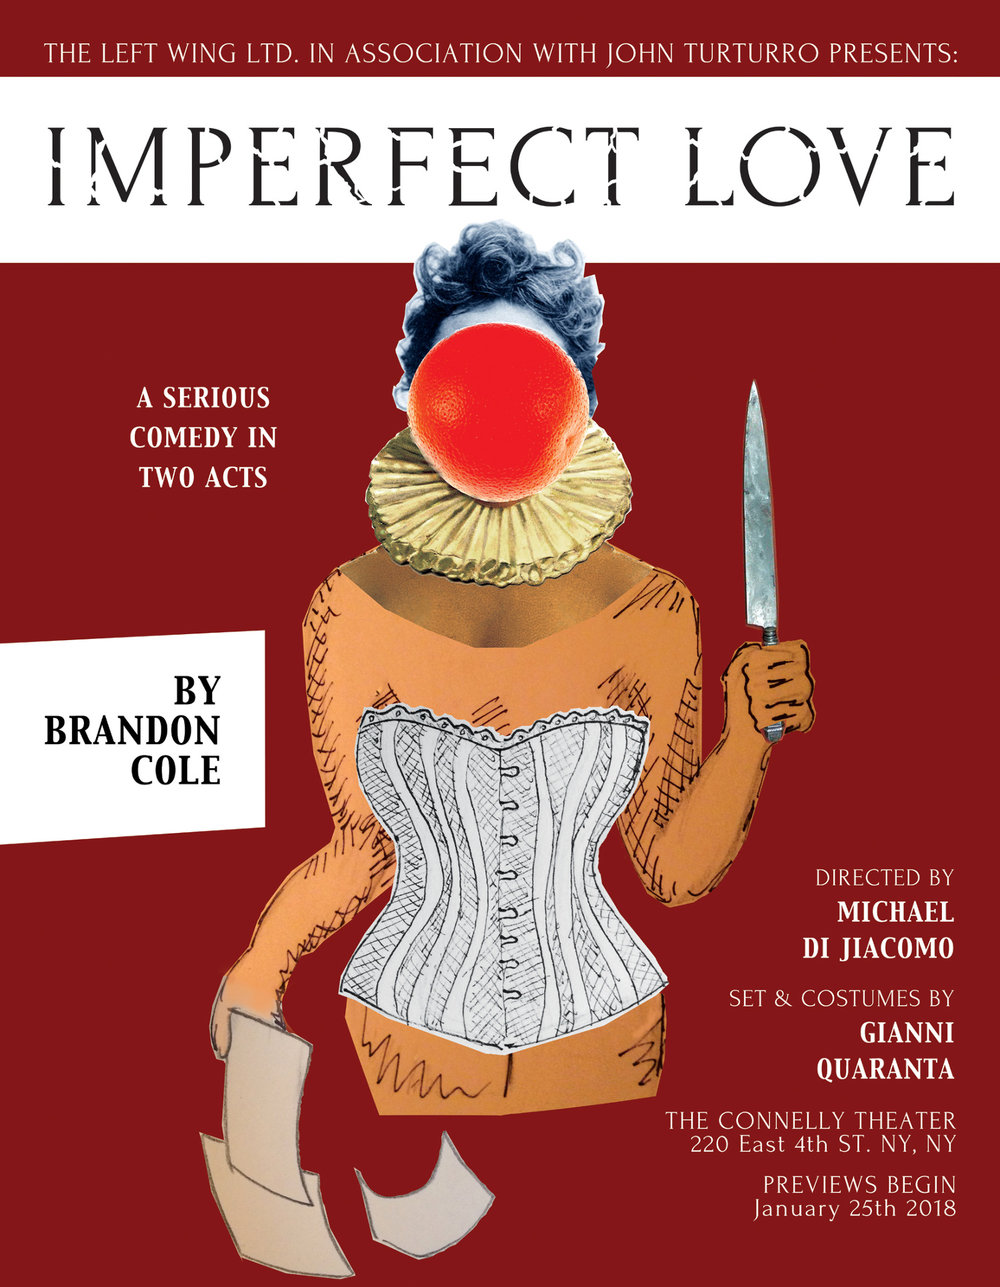 ImperfectLovePoster23x31_nosite_1500.jpg